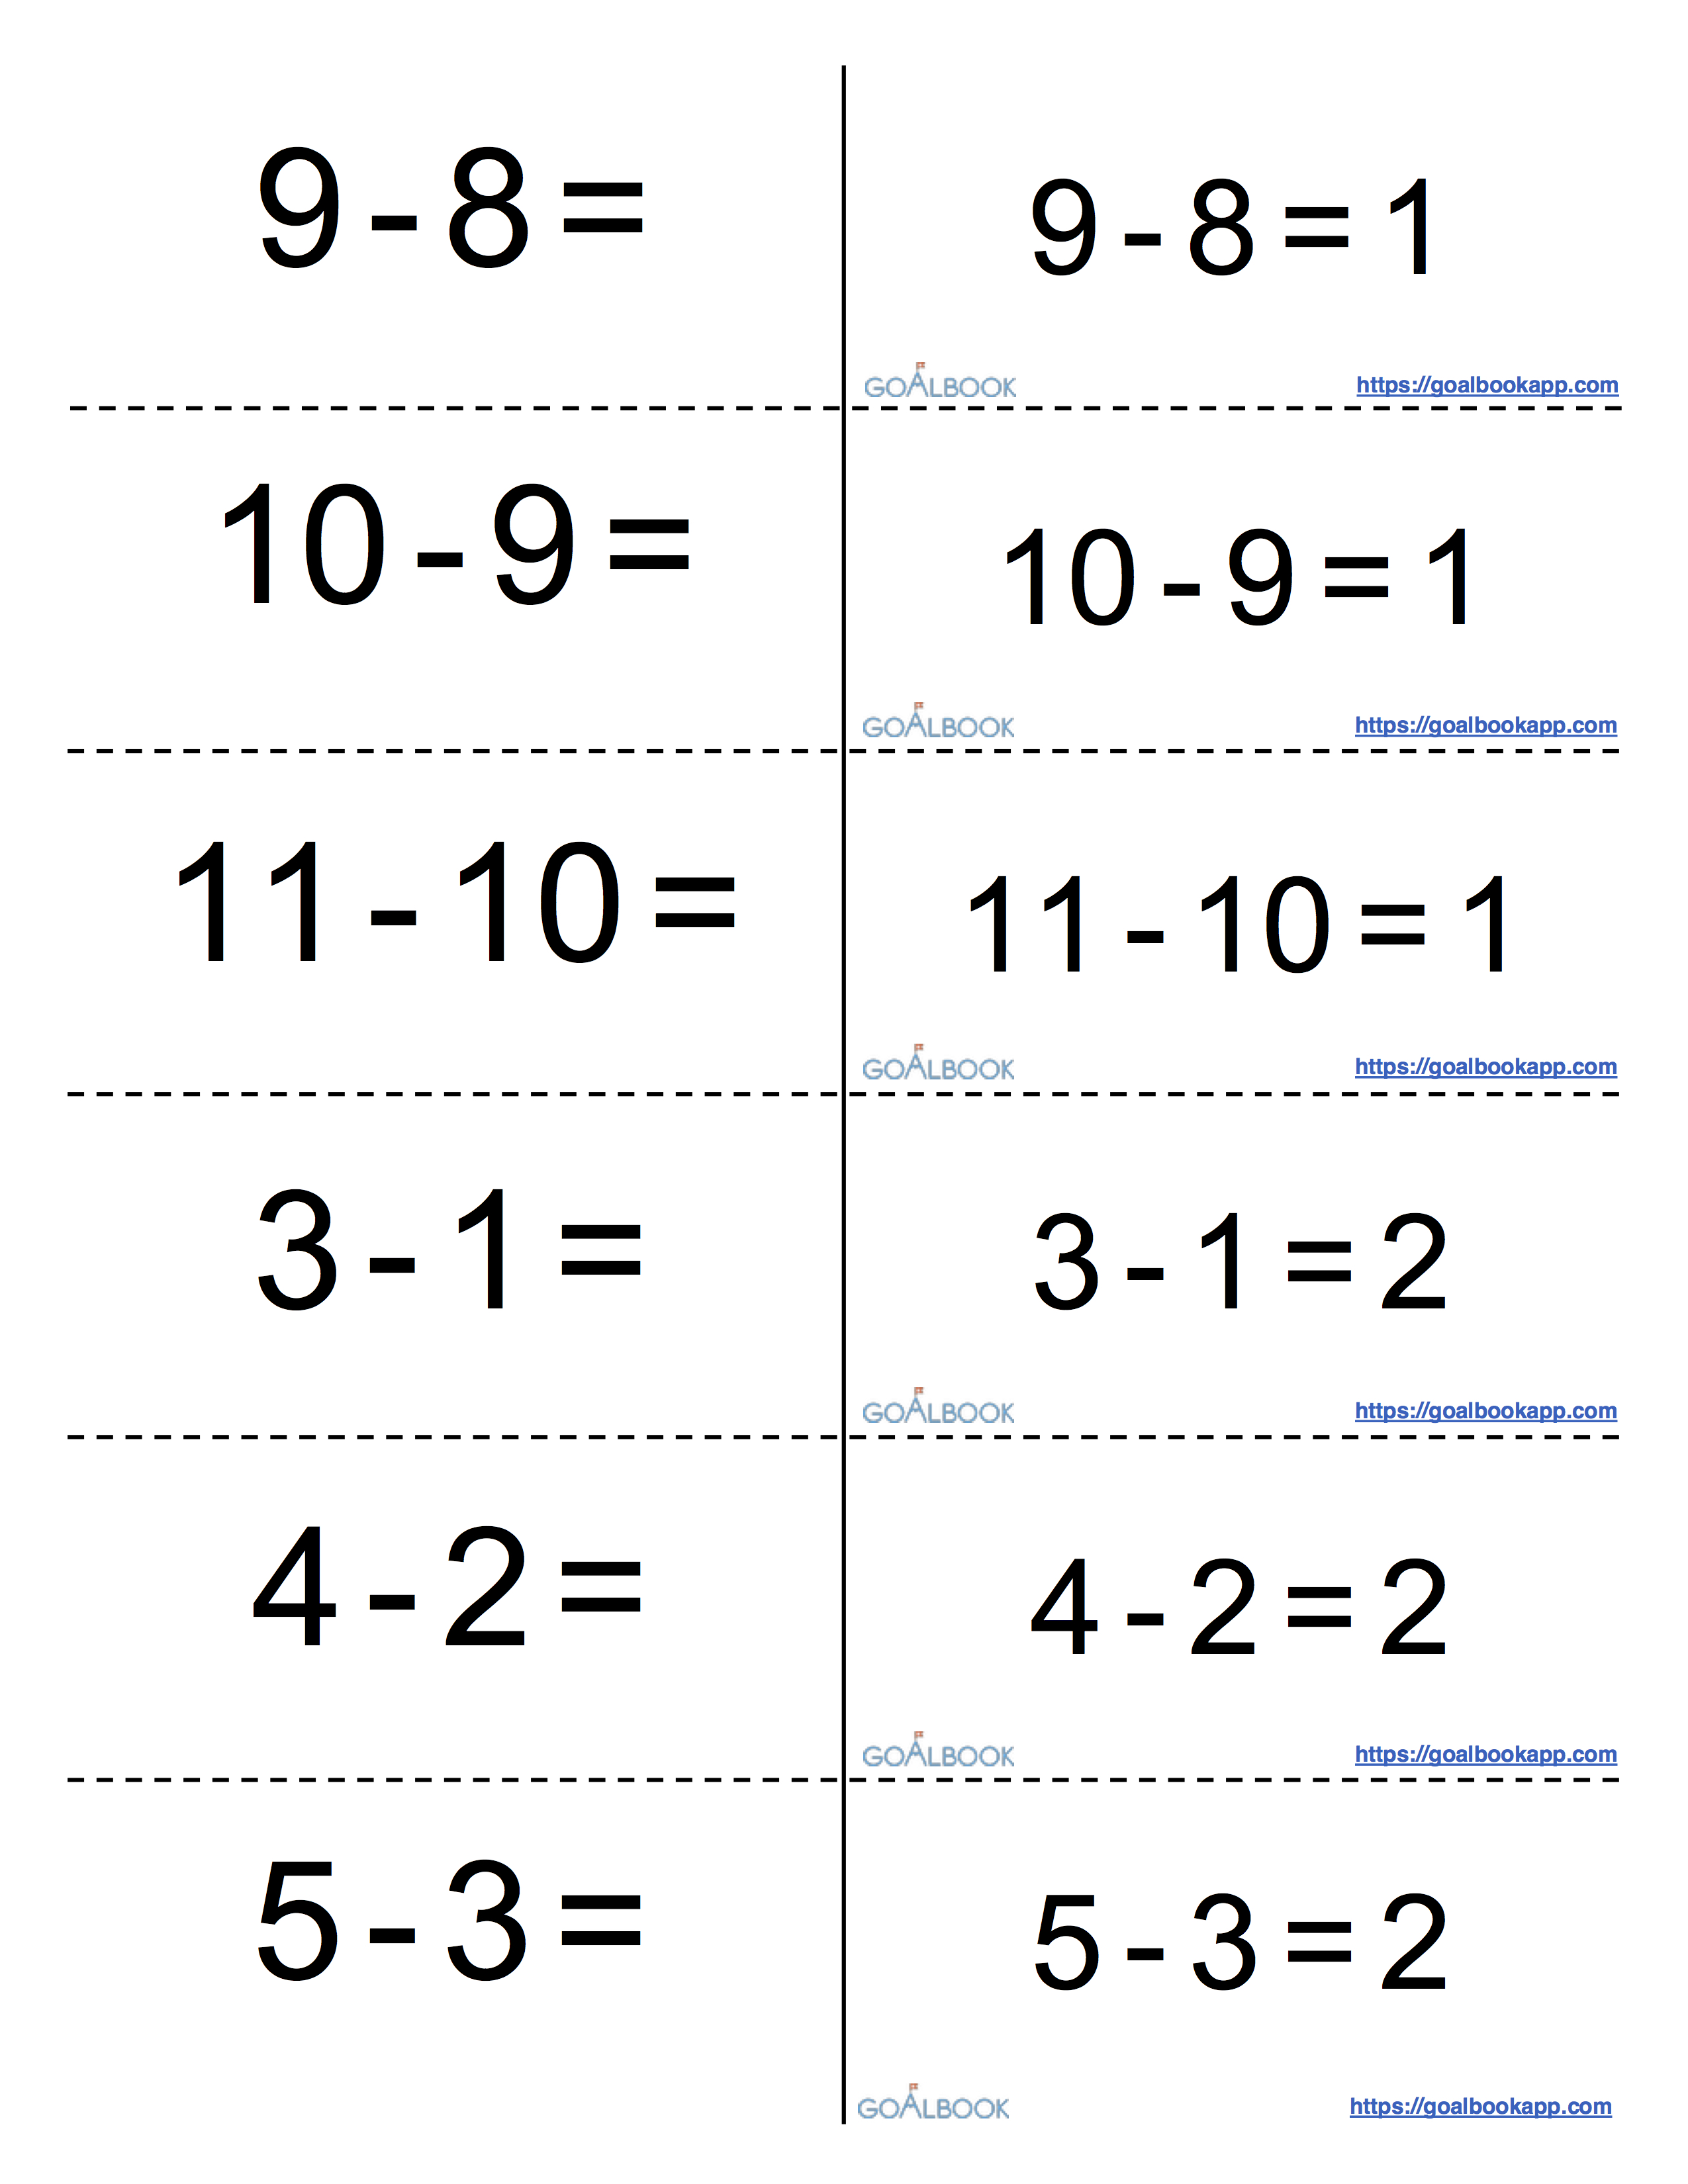 worksheet Subtraction Flash Cards subtraction flashcards free graph paper generator subtracting on a koa5 fluently add and subtract math operations algebraic resource 423093a2 1d46 41ec 62ba flashcard